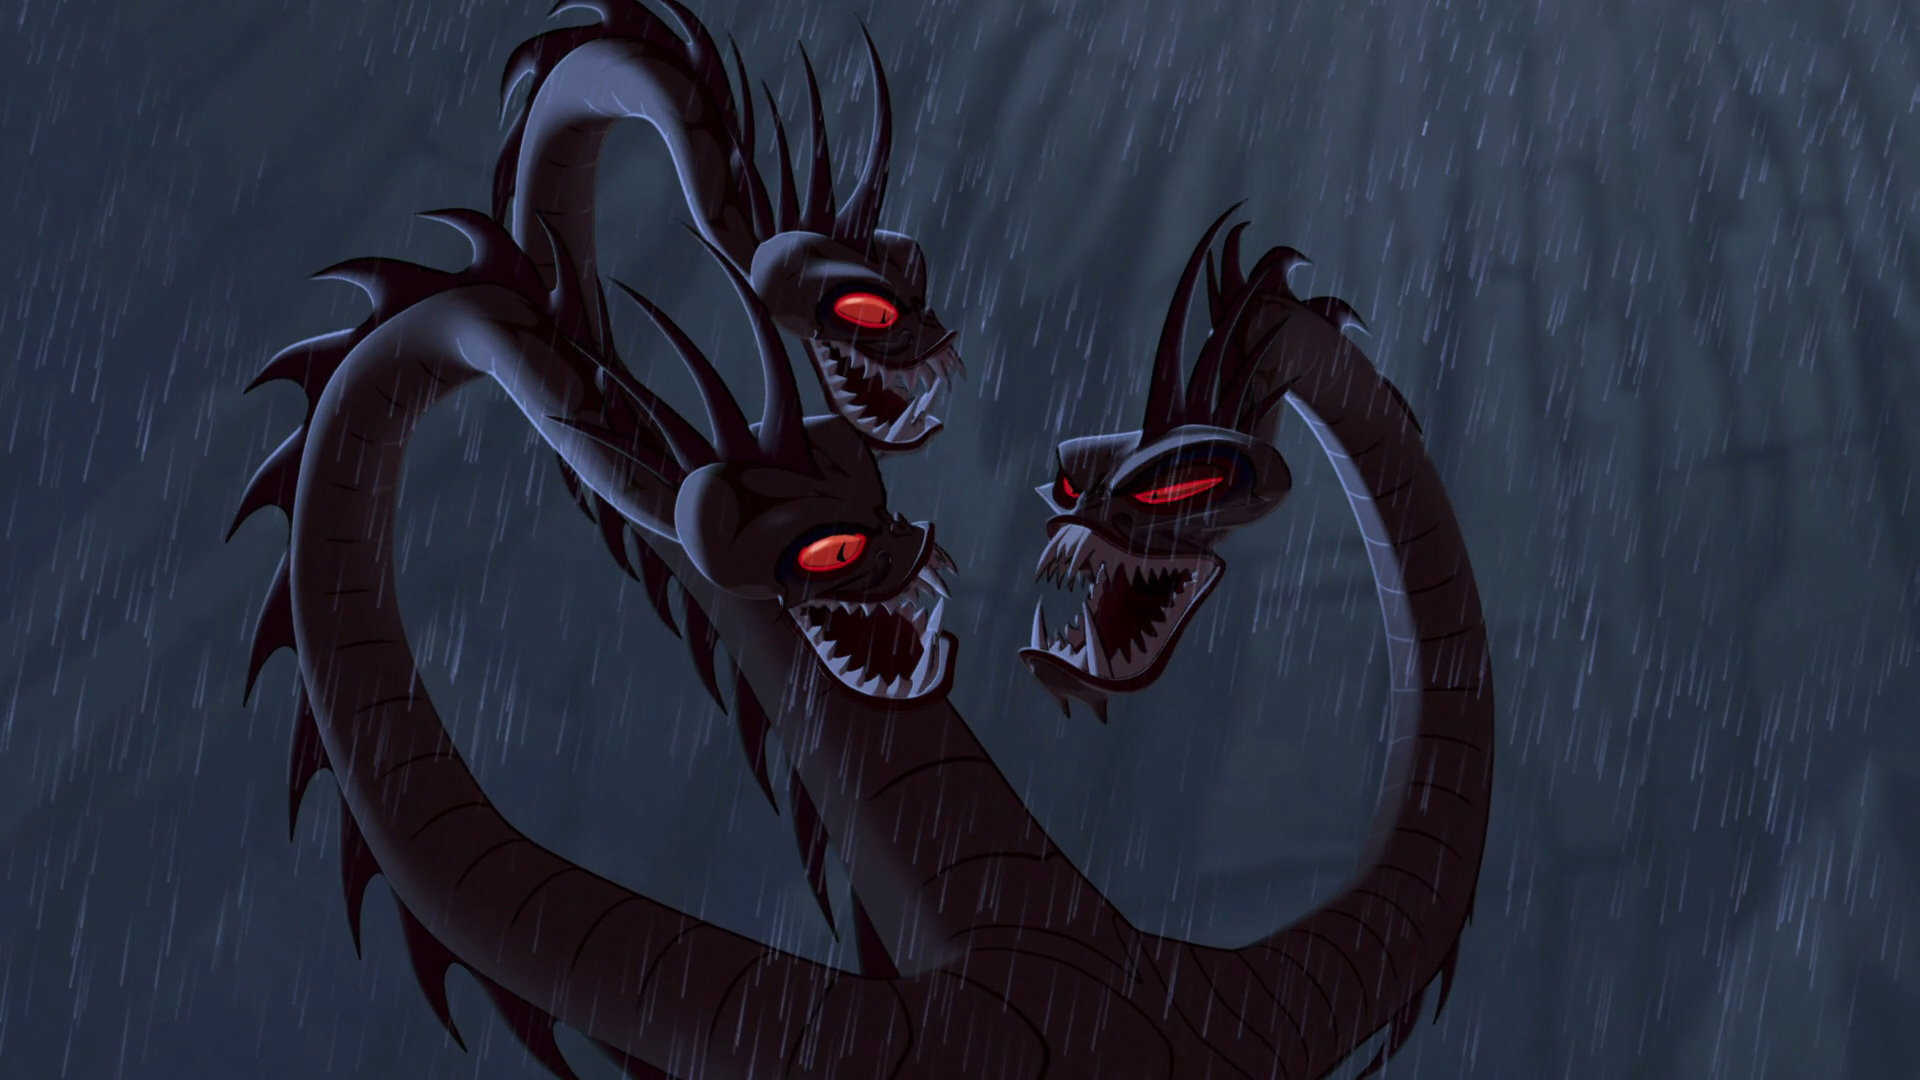 Hydre Hydra Personnage Character Disney Hercule